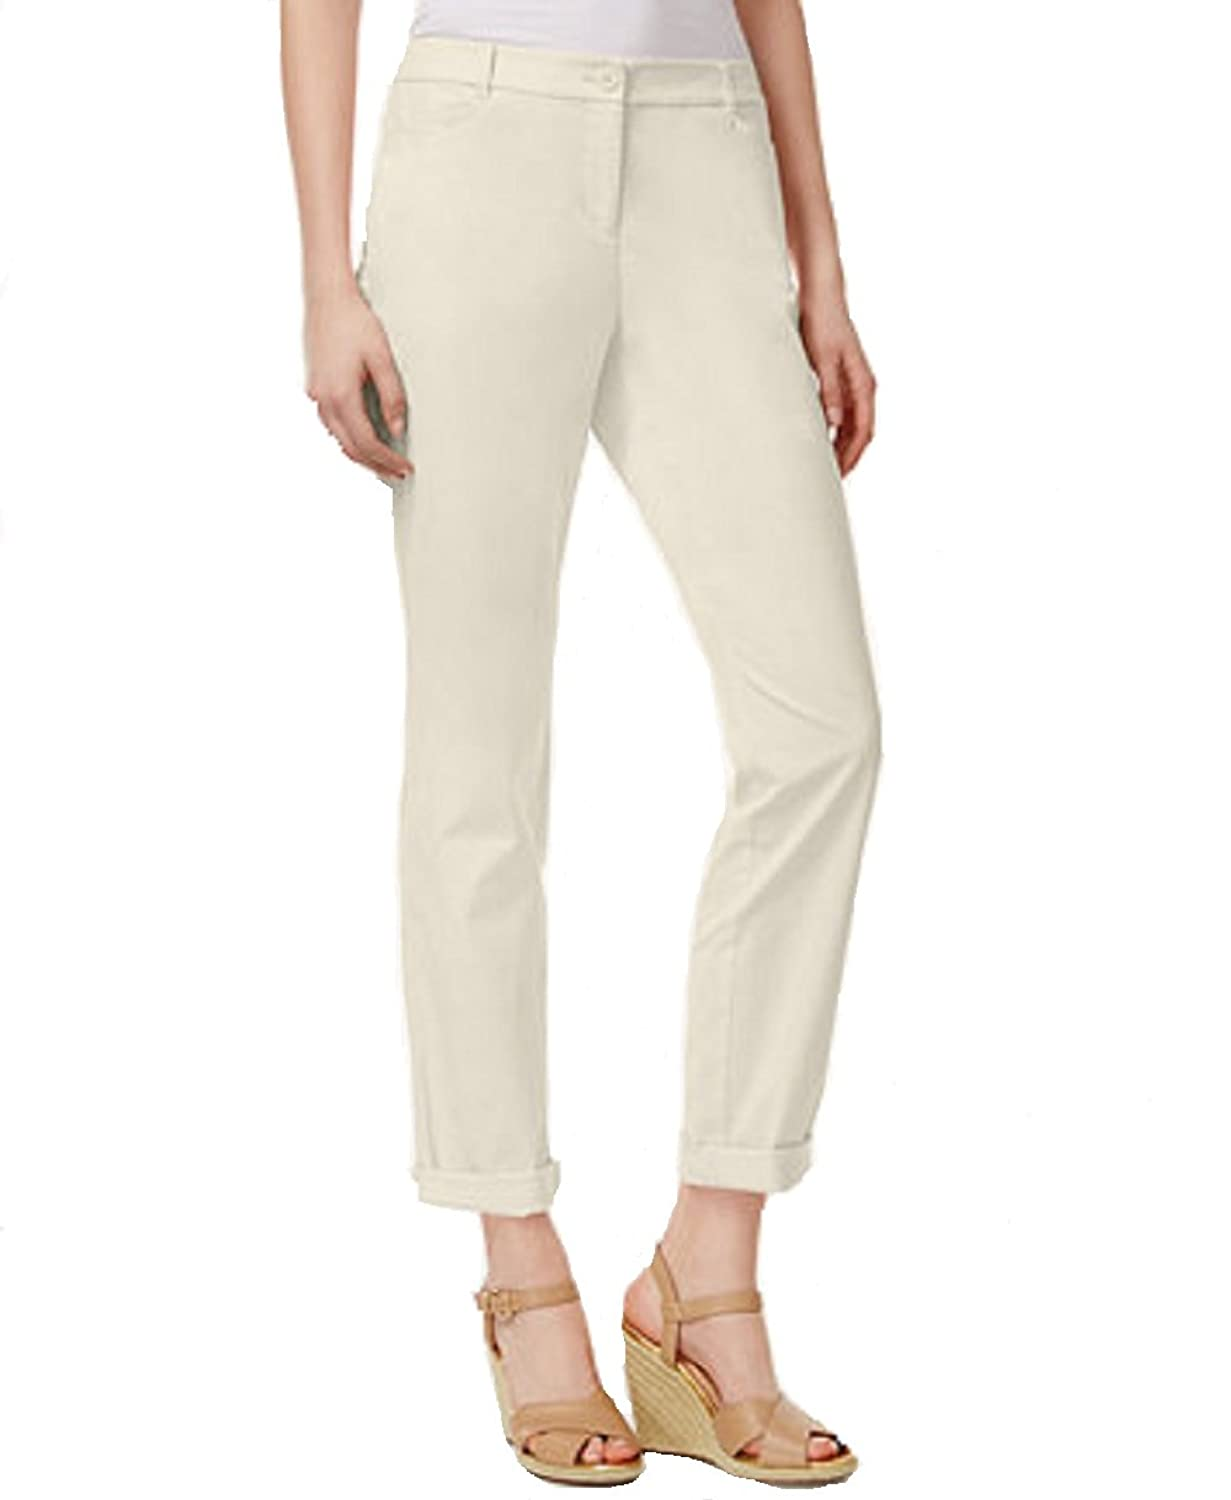 Wholesale Charter Club Petite Slim-Fit Rolled Chino Pants Sand 16P supplier